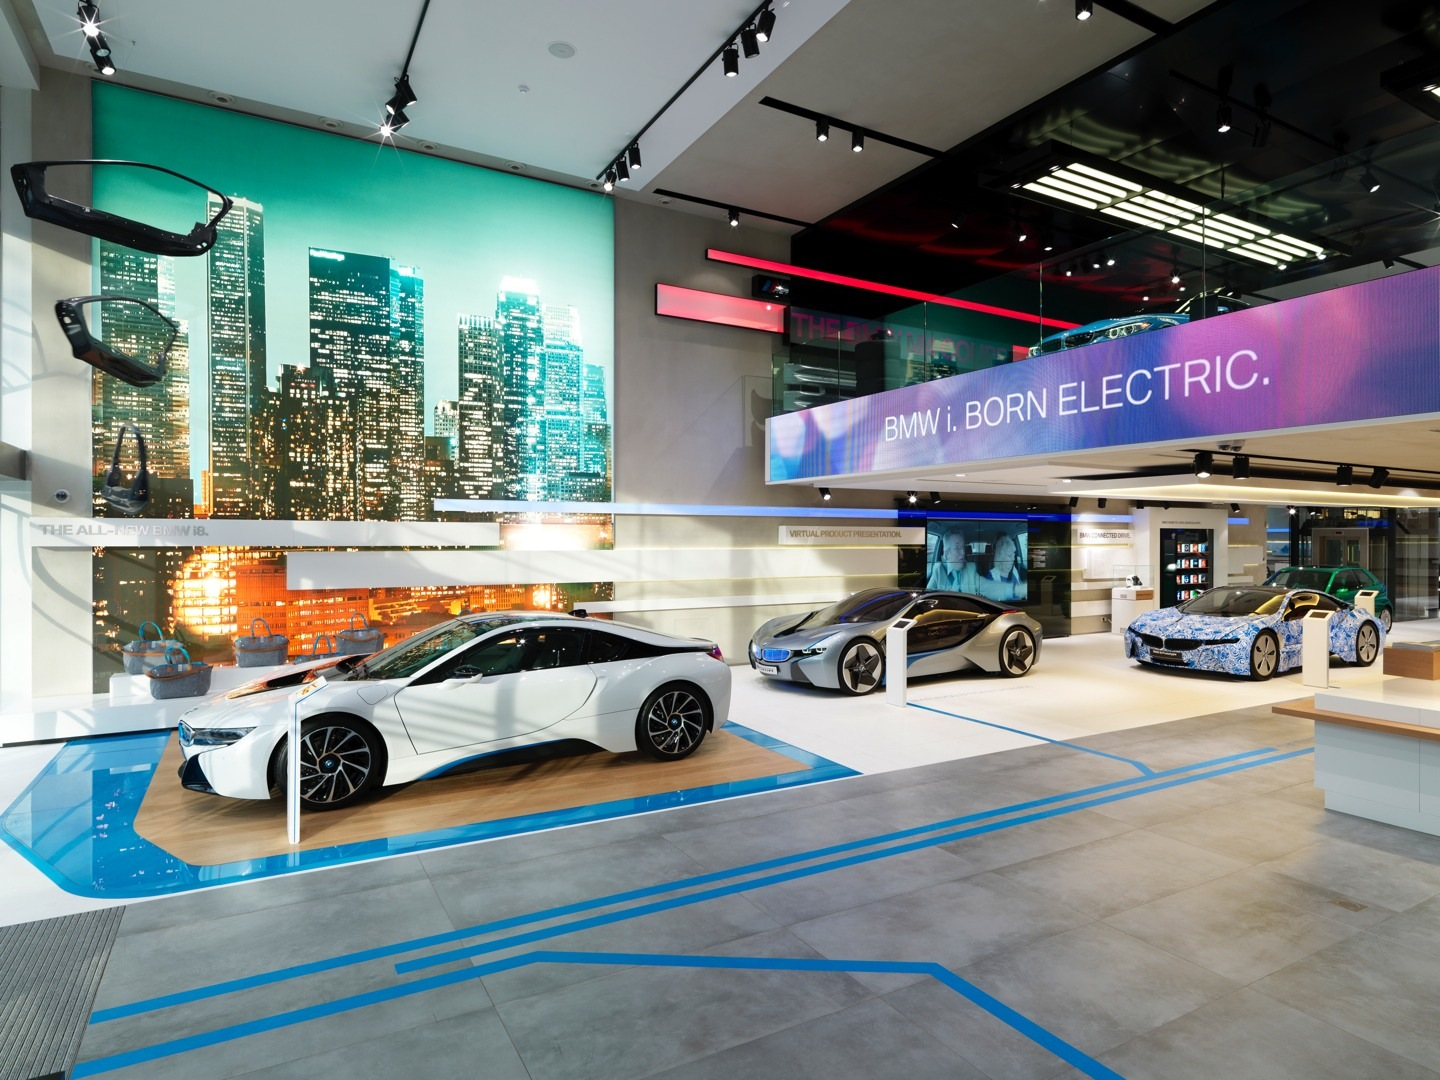 Brussels bmw brand store earns 2014 iconic award for for Auto interior design ideas